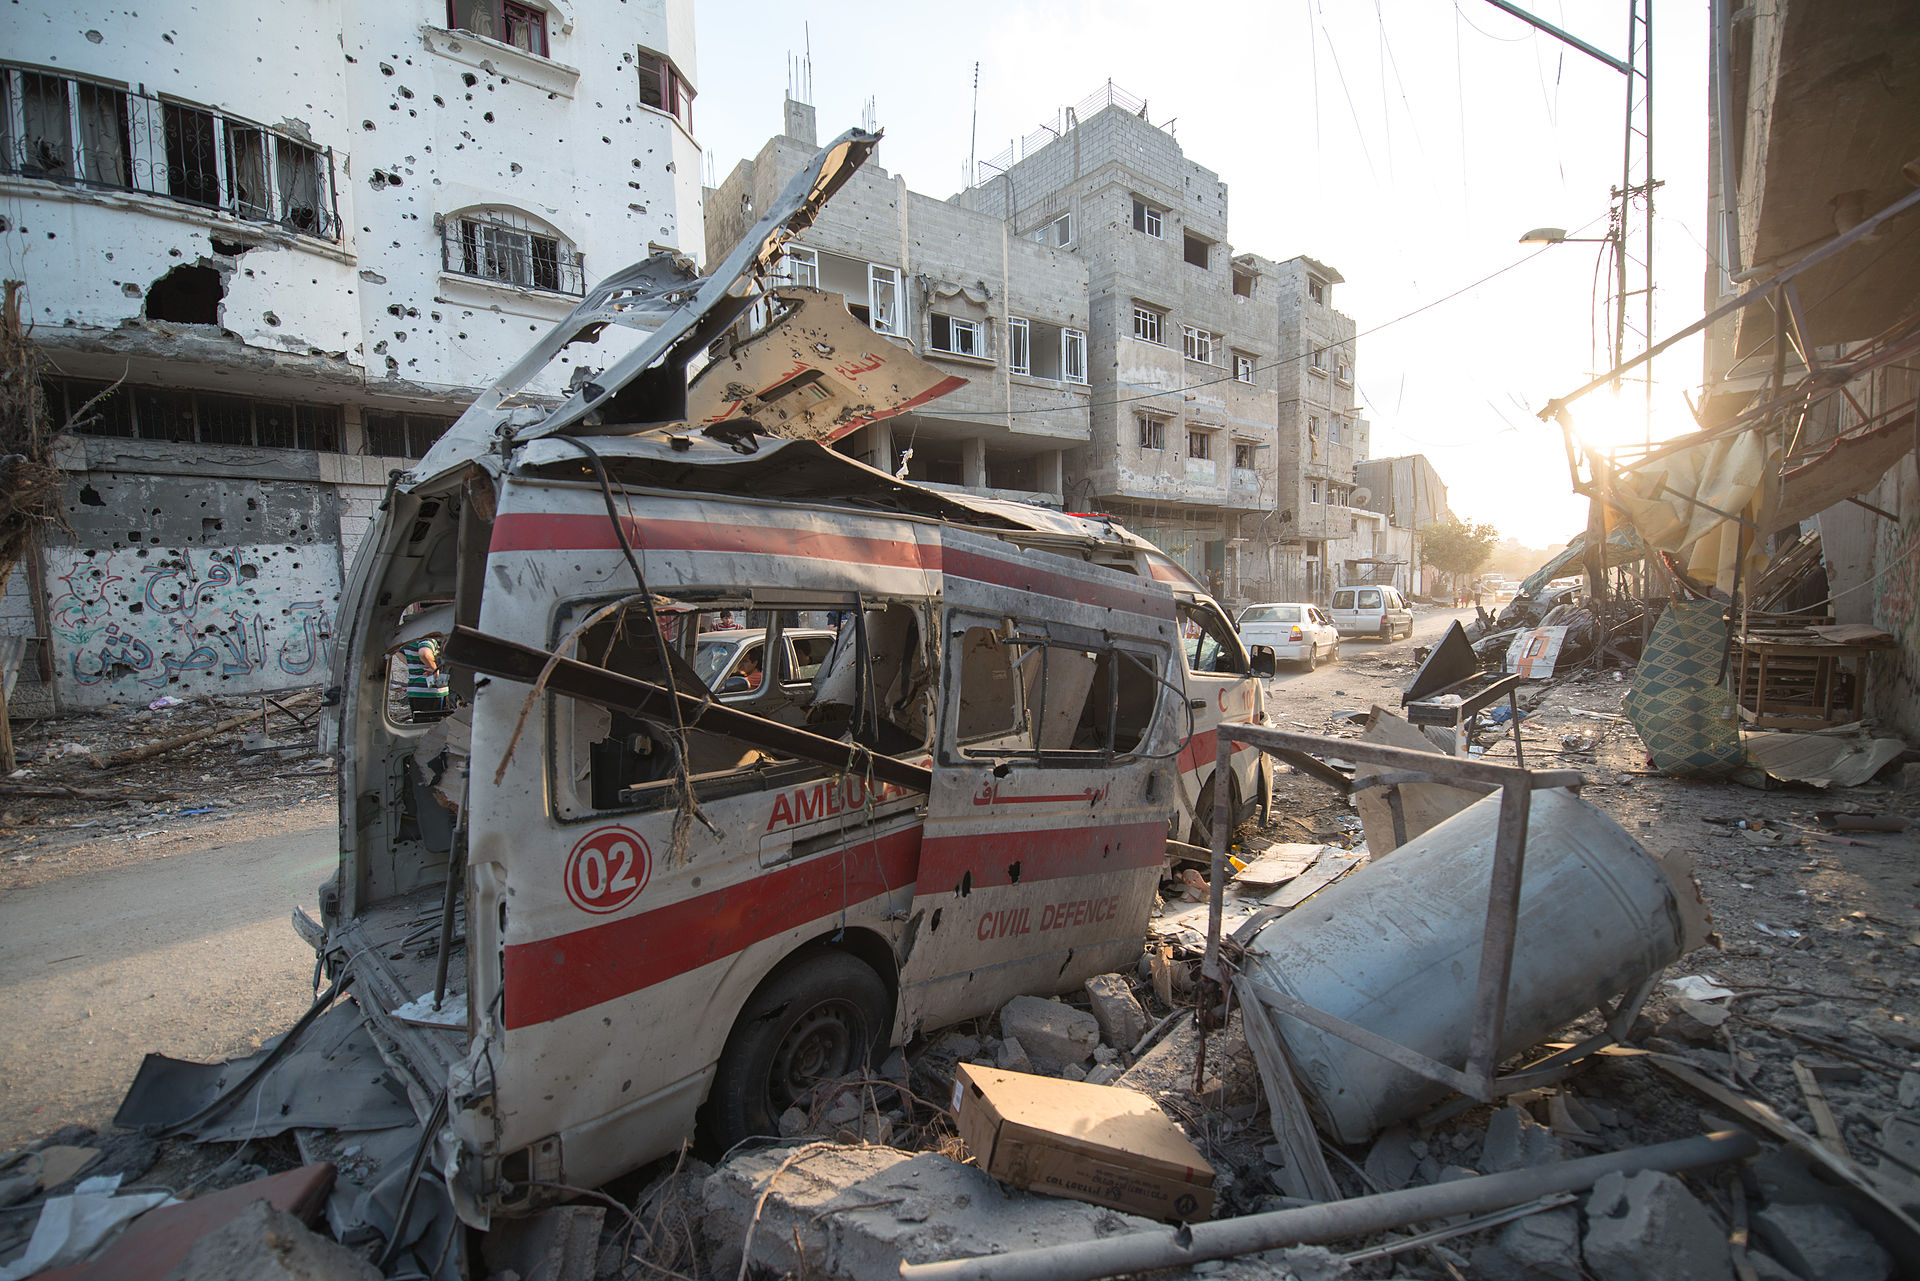 destroyed_ambulance_in_the_city_of_shijaiyah_in_the_gaza_strip